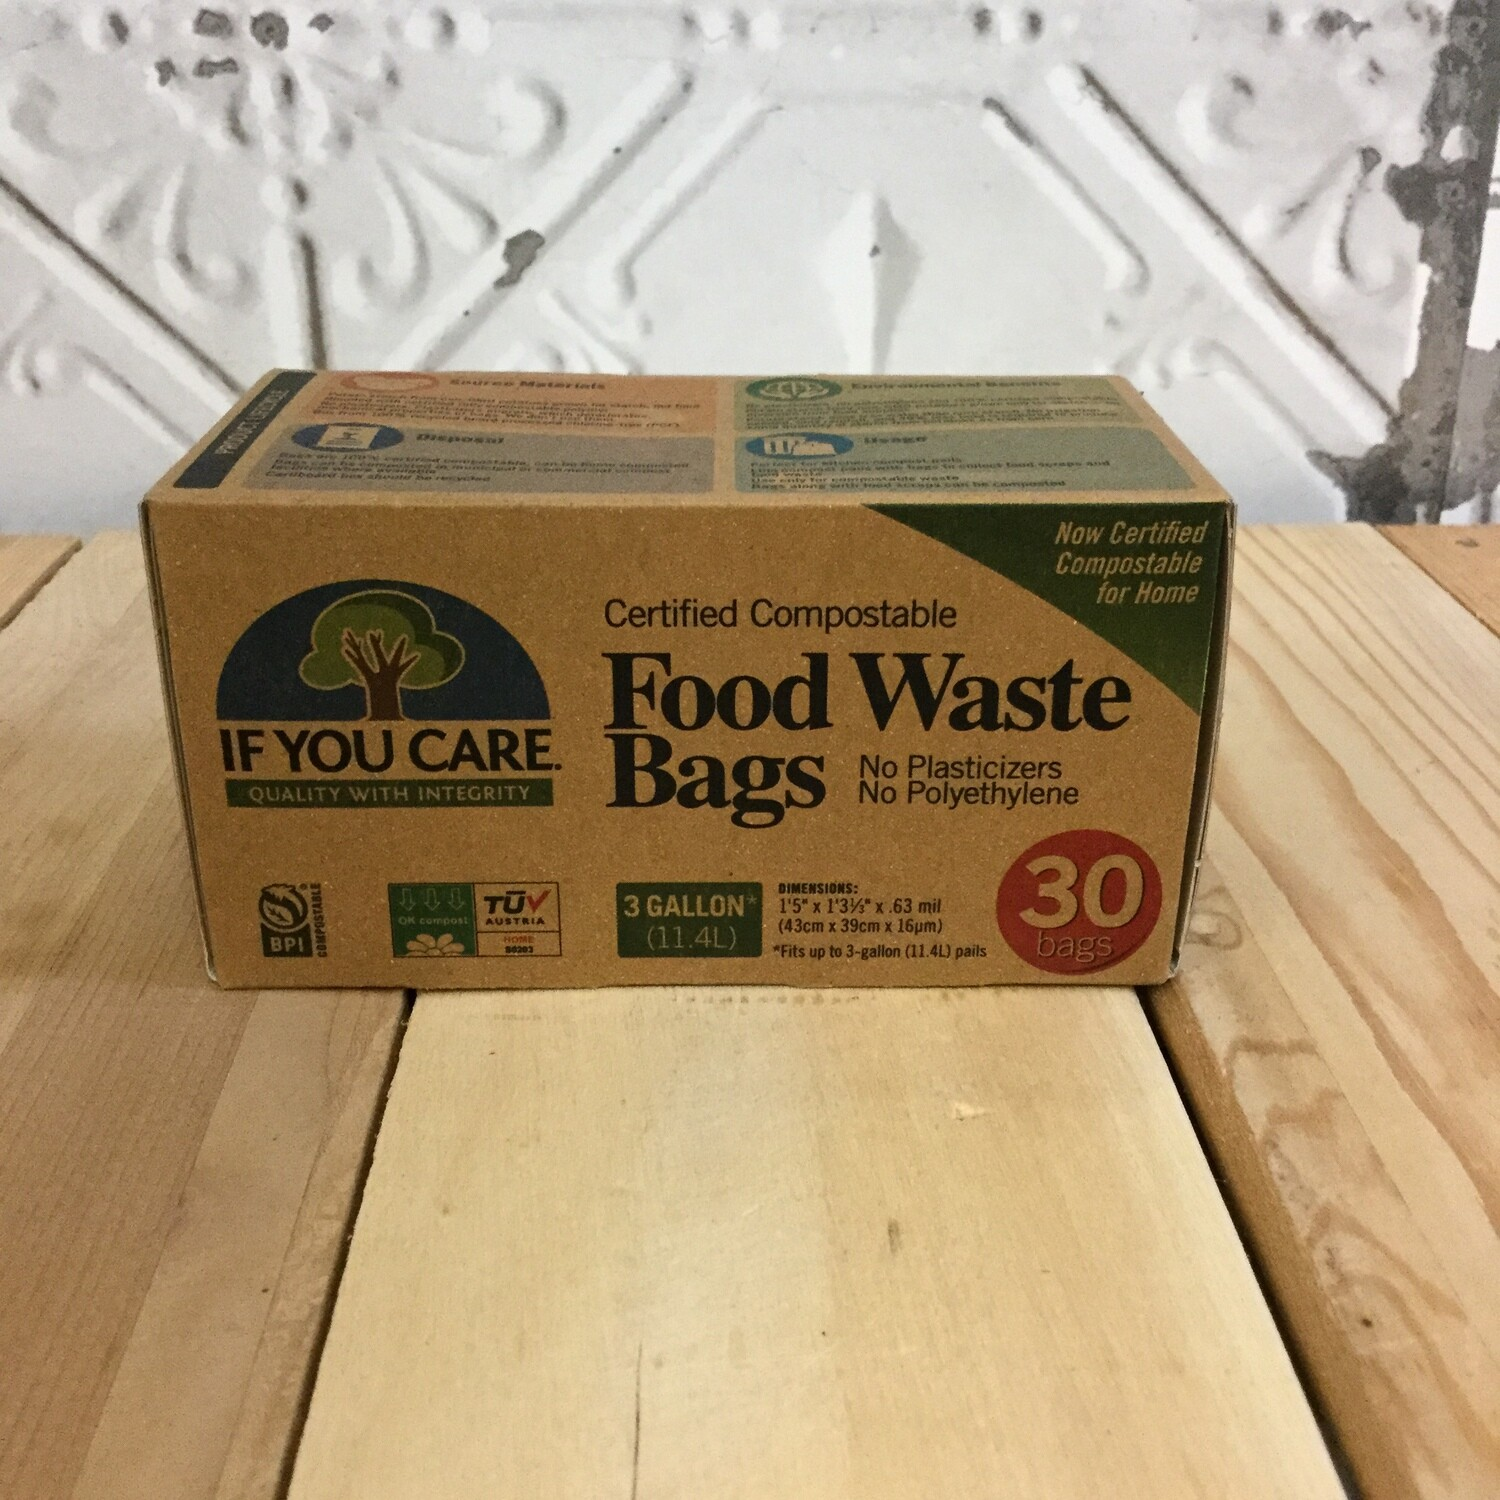 IF YOU CARE Food Waste Bags 30ct